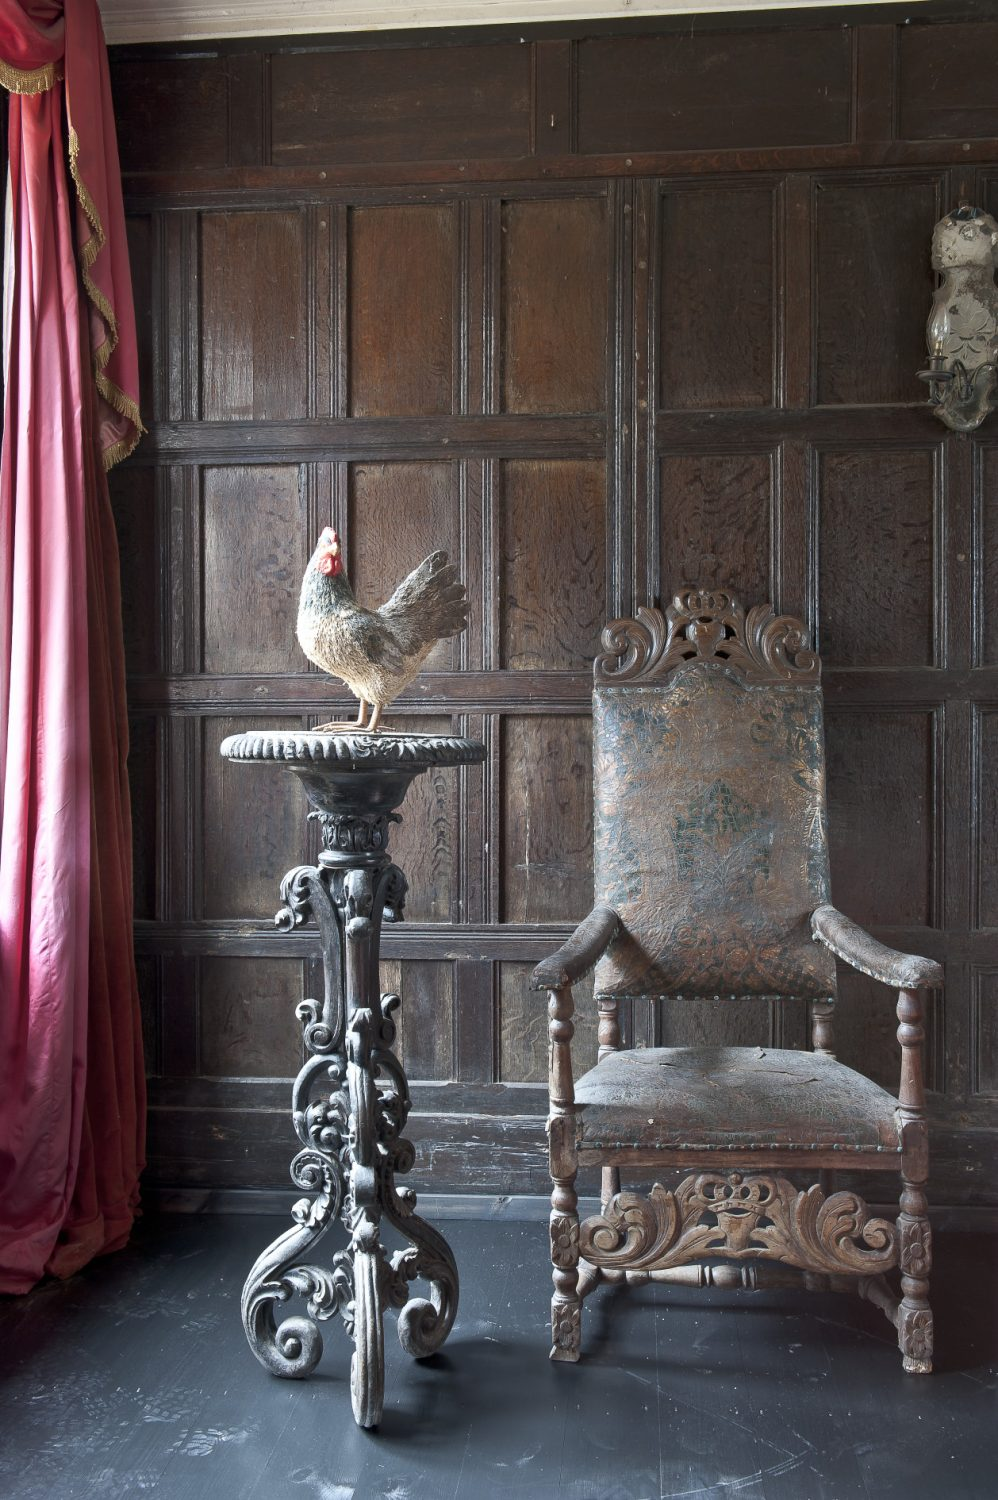 Provender began as a hunting lodge in the 13th century, but has been augmented over the centuries so that the house is now a huge, rambling residence